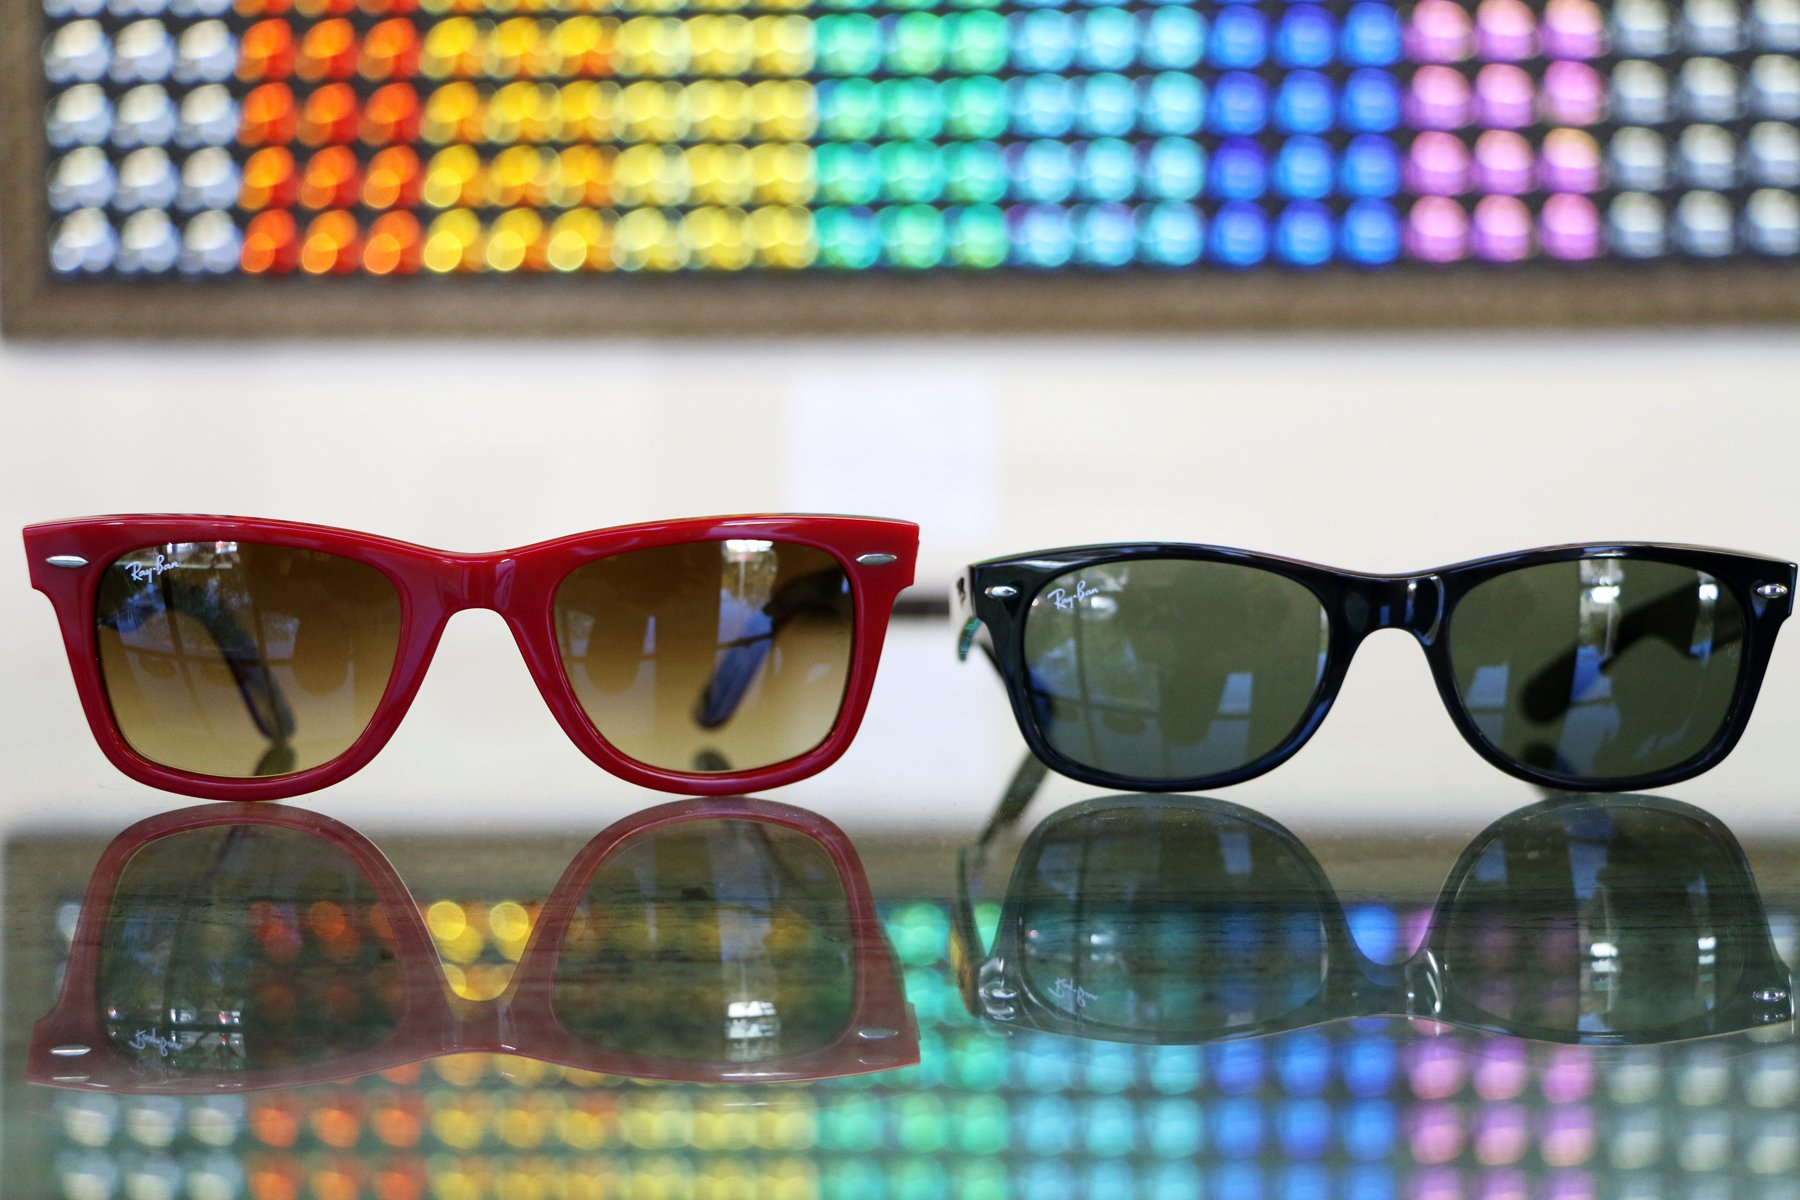 8969e795acd Ray-Ban New Wayfarer vs. Original Wayfarer